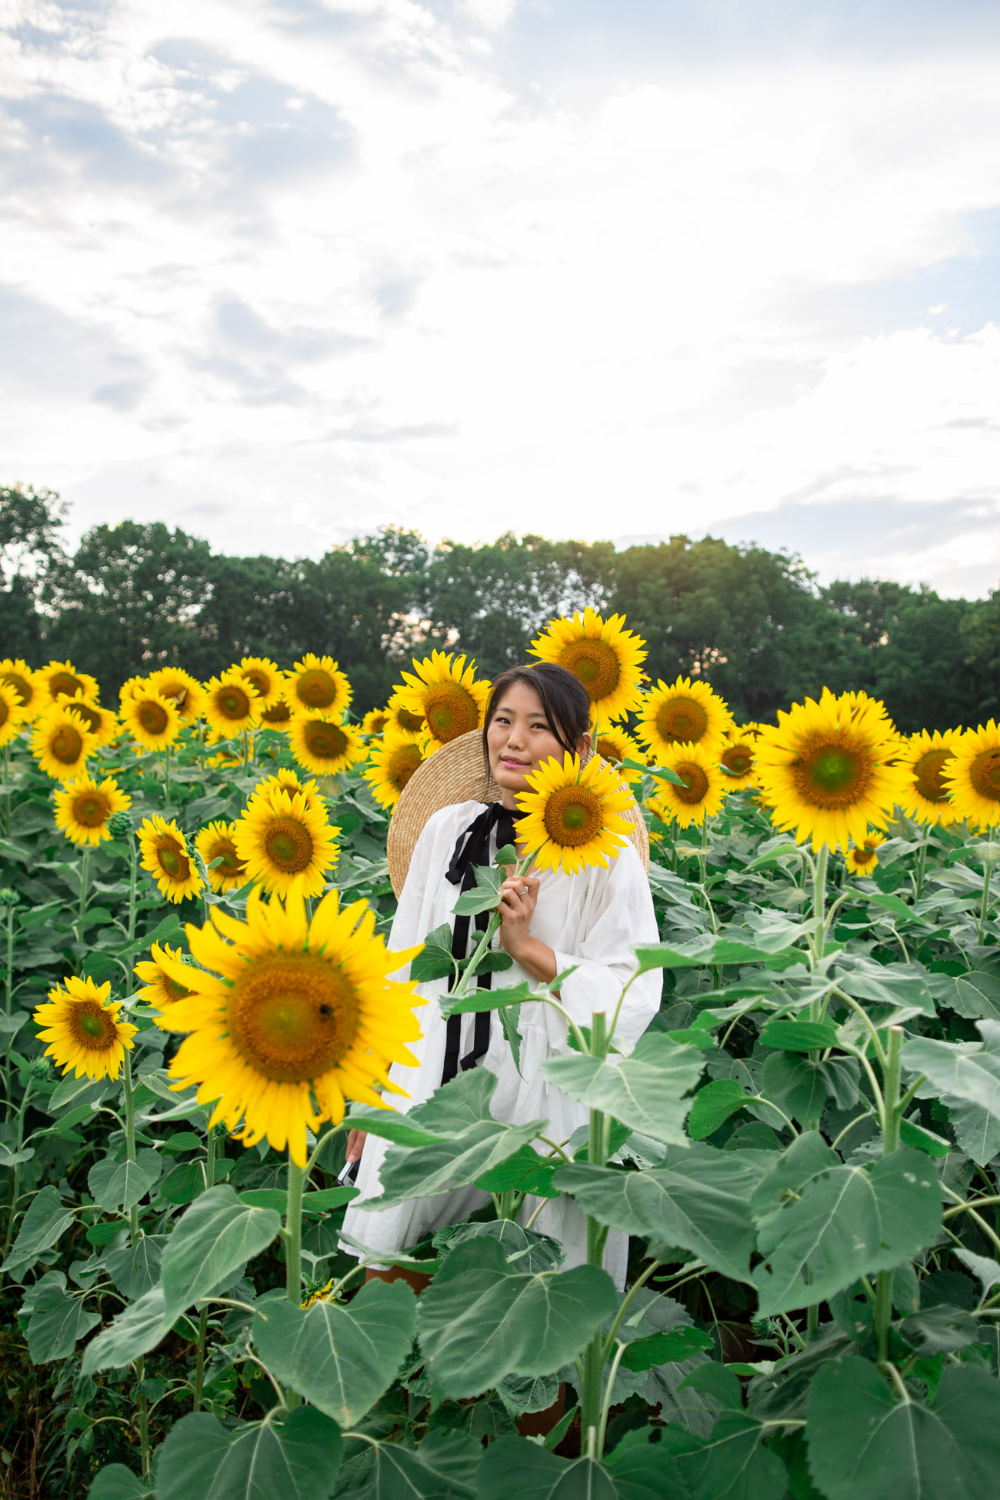 5 Sunflower Fields In Maryland Are Blooming If You Missed Mckee Beshers Sunflower Fields Types Of Sunflowers Pretty Gardens